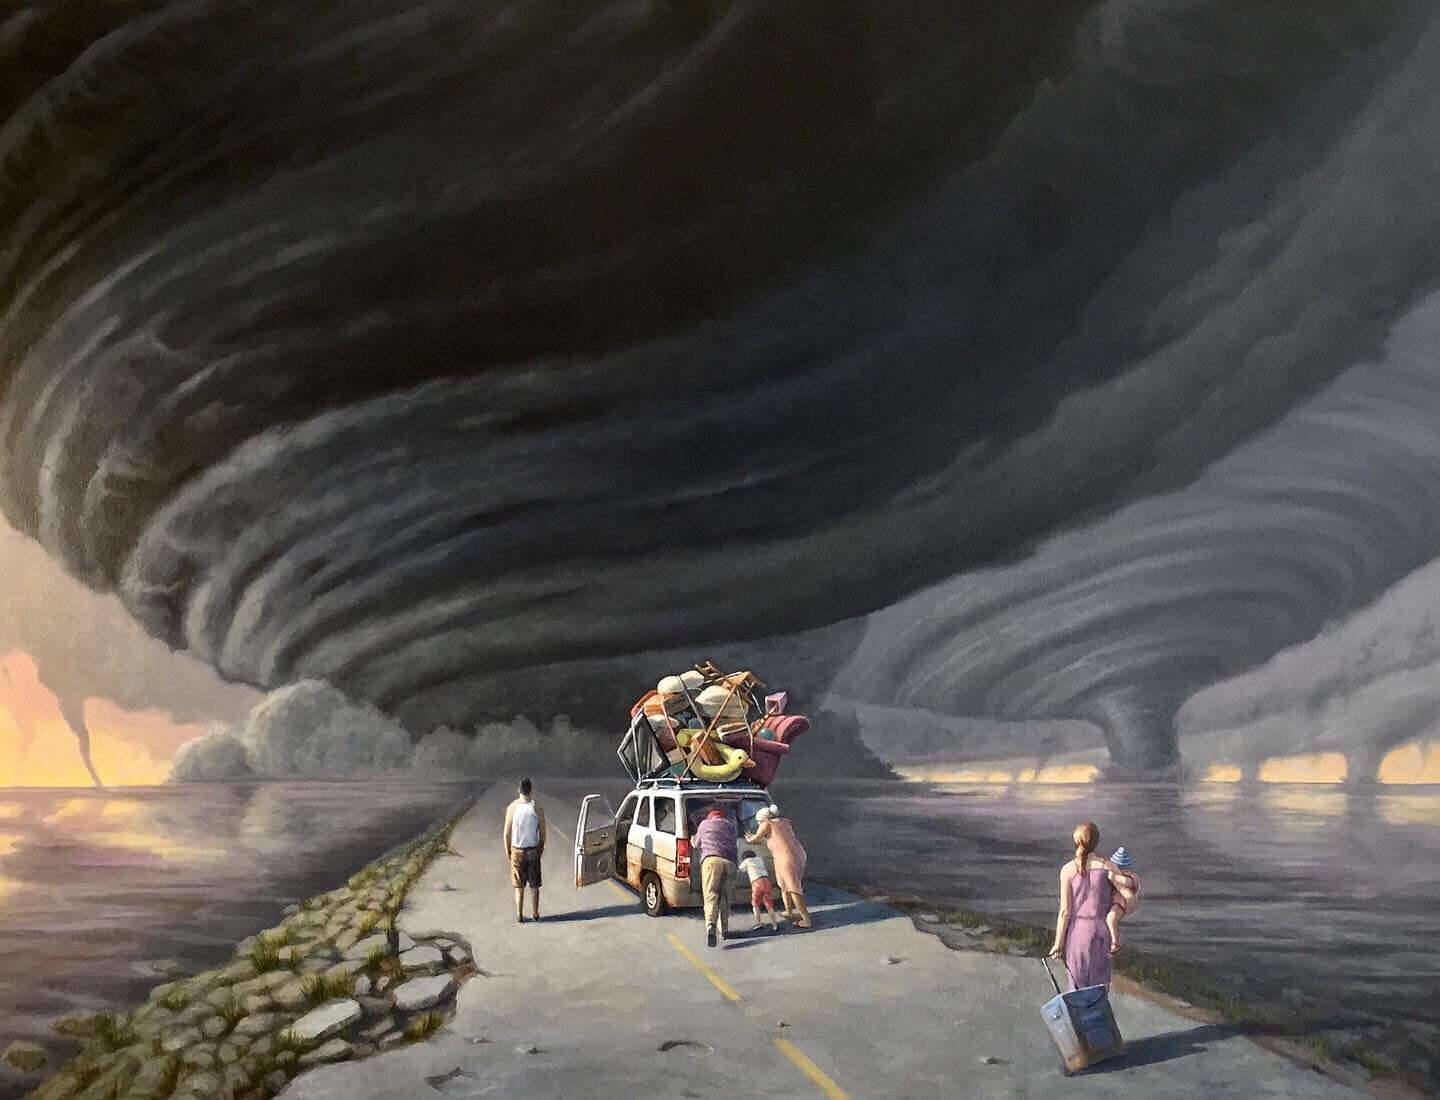 """""""The Causeway"""" Just finished this in time for Dorian to show up. It's a metaphor for the near future when we are no longer able to continue with business as usual. #Dorian #HurricaneDorian #tornado #ClimateChange #GlobalWarming #climaterefugees #art #painting #politicalart https://t.co/VHOacnyQhM"""